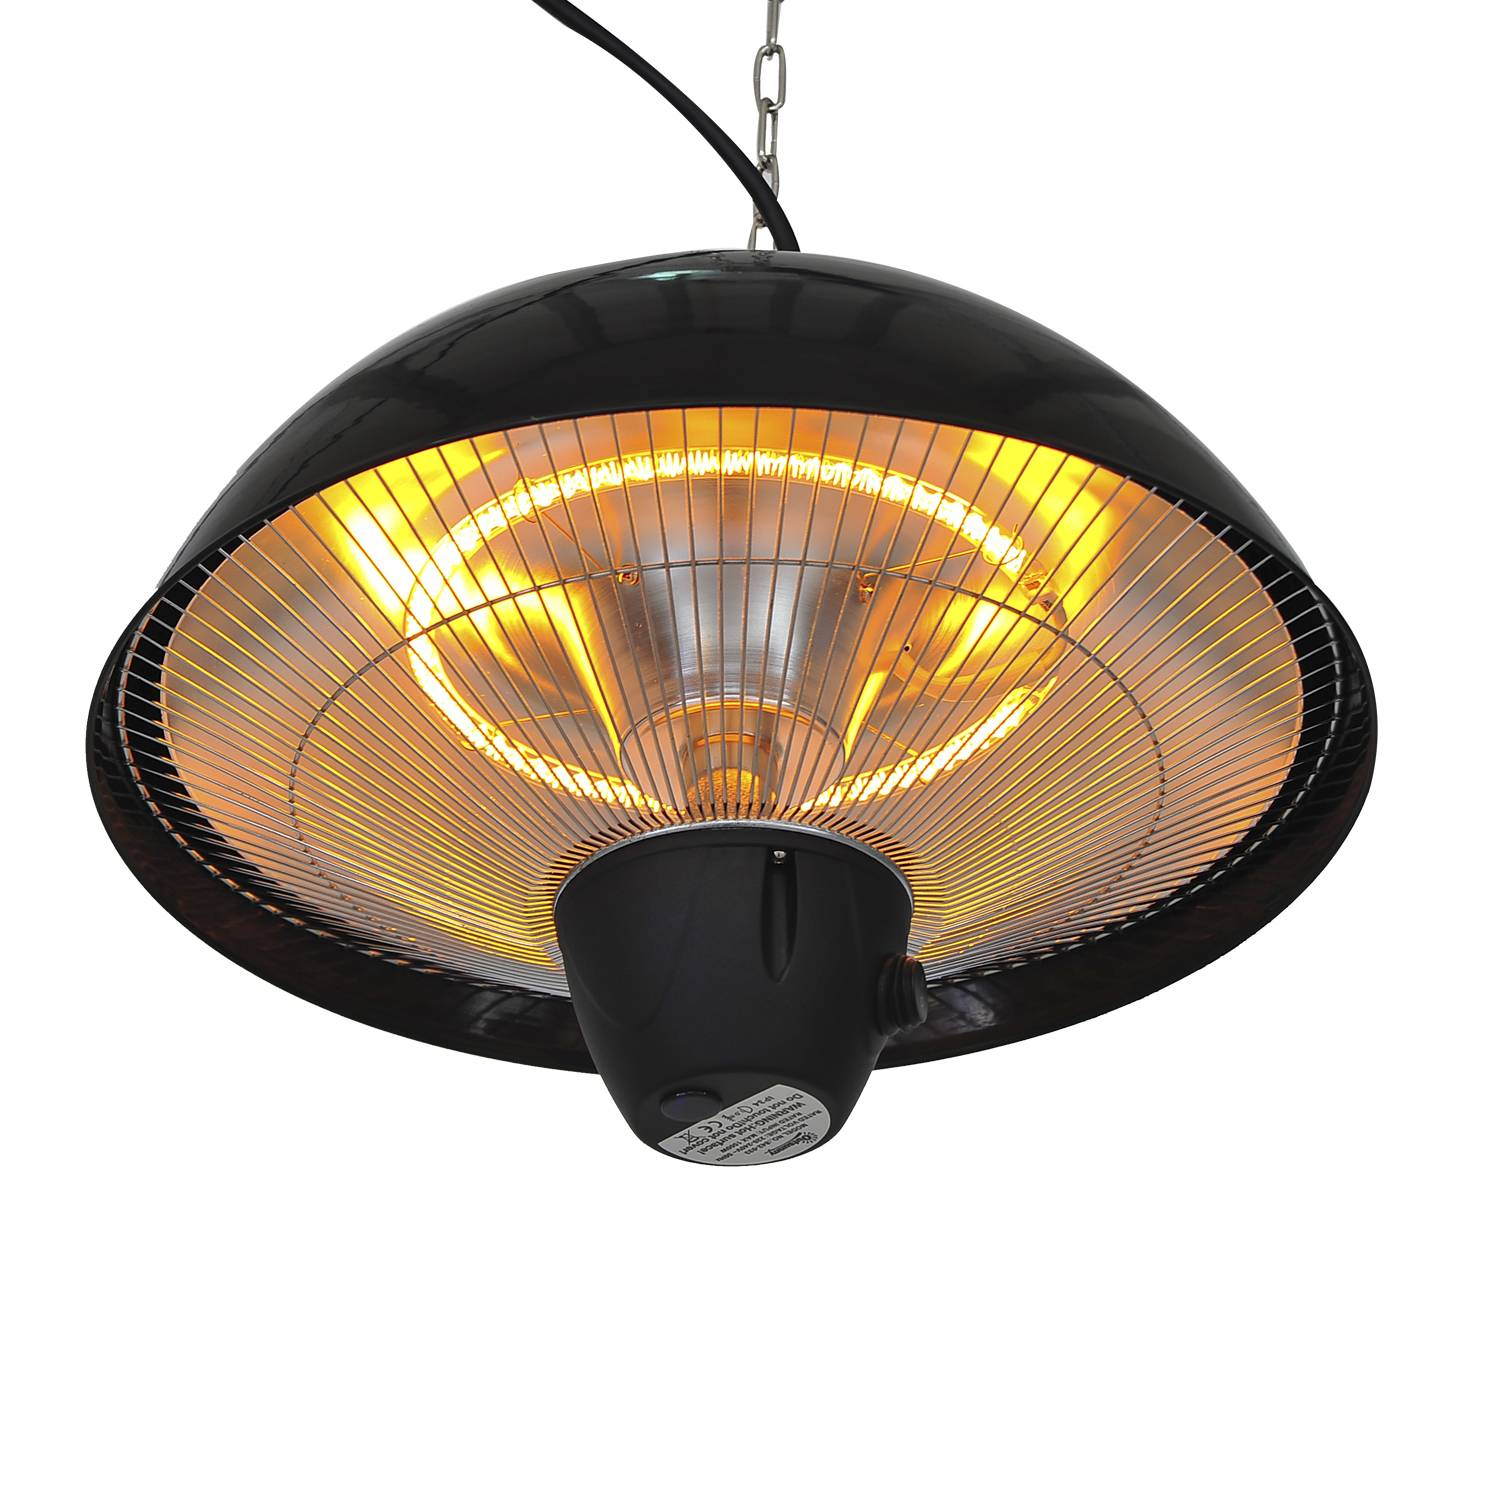 Outsunny Ceiling Mounted Electric Patio Heater-Black